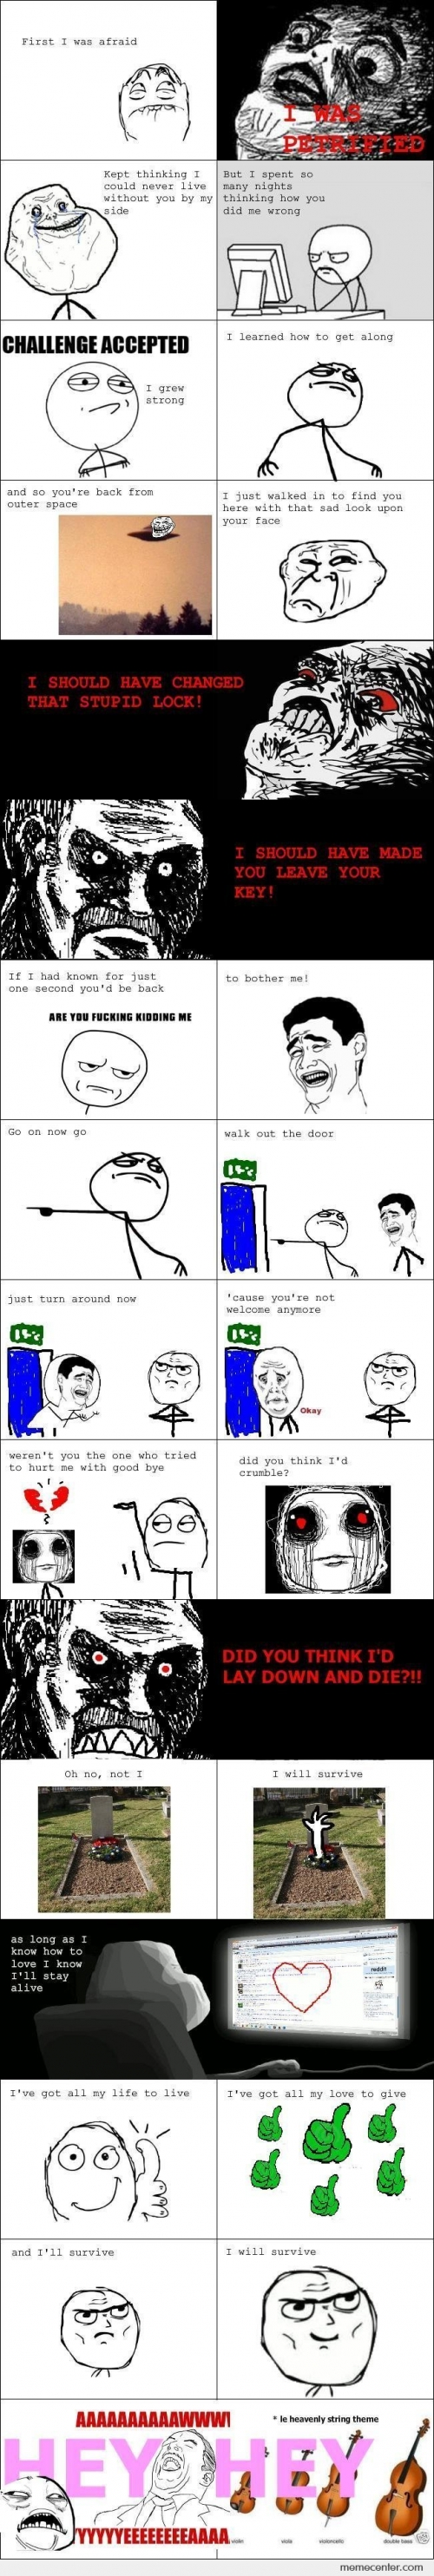 I Will Survive Lyrics Rage Comics Style